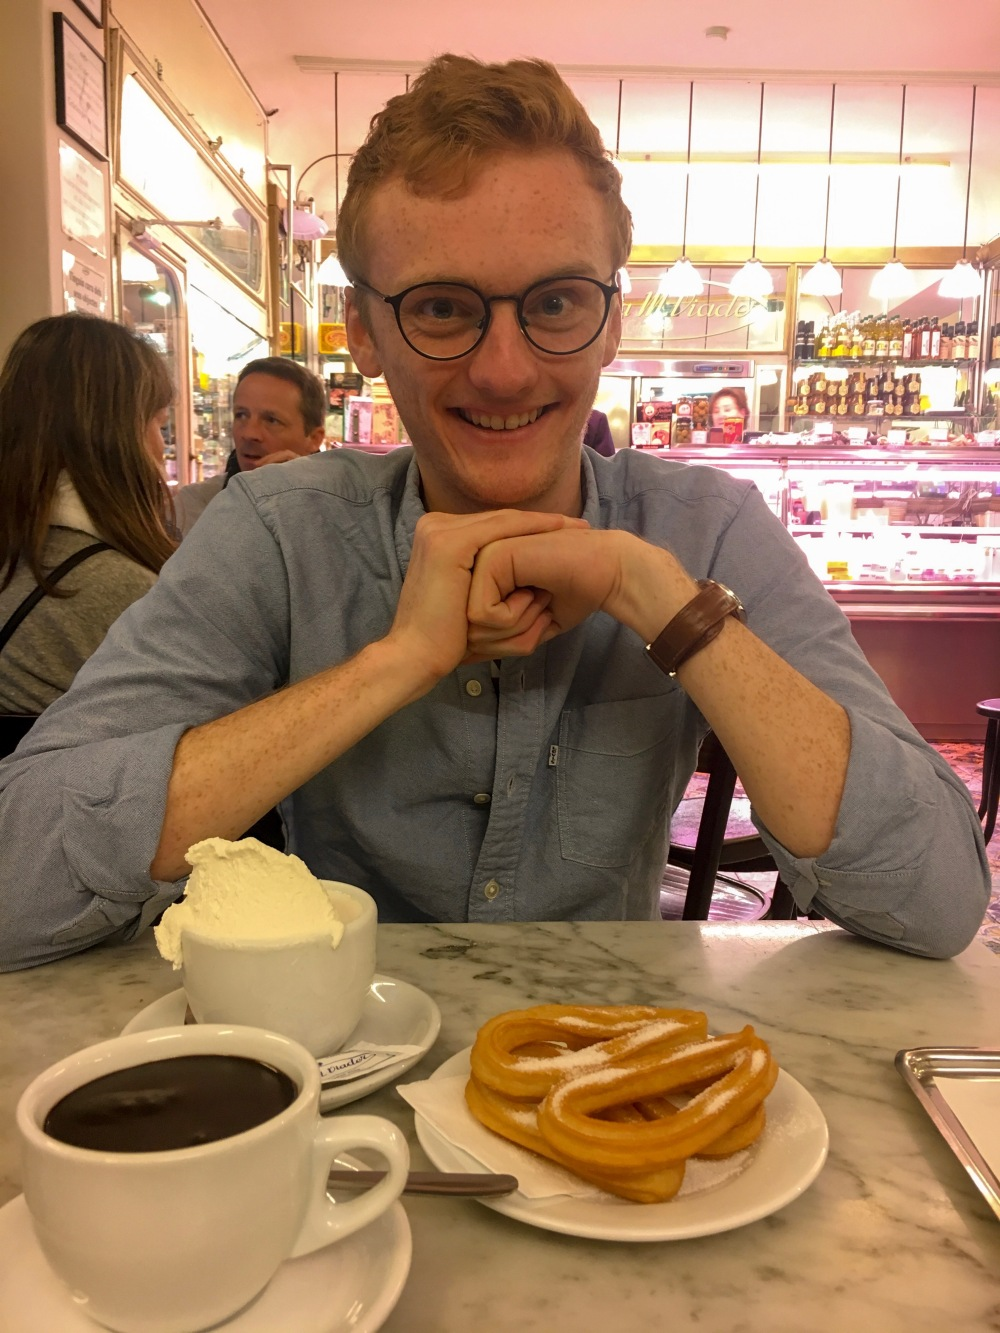 Churros and chocolate at Granja M. Viader